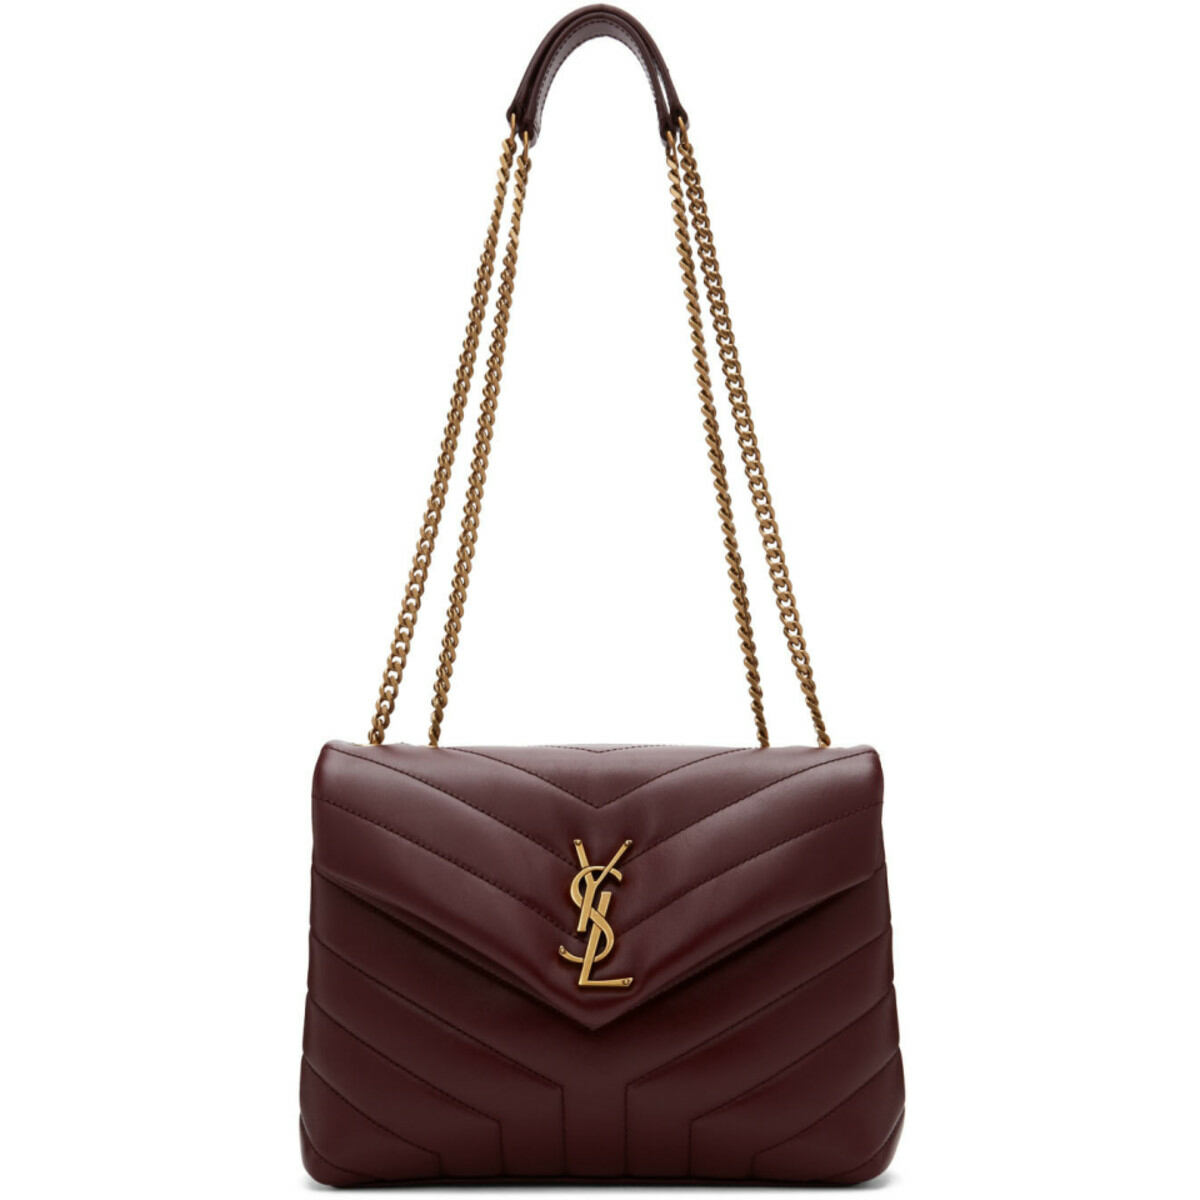 GOOFASH Women Bags and Wallets Shop